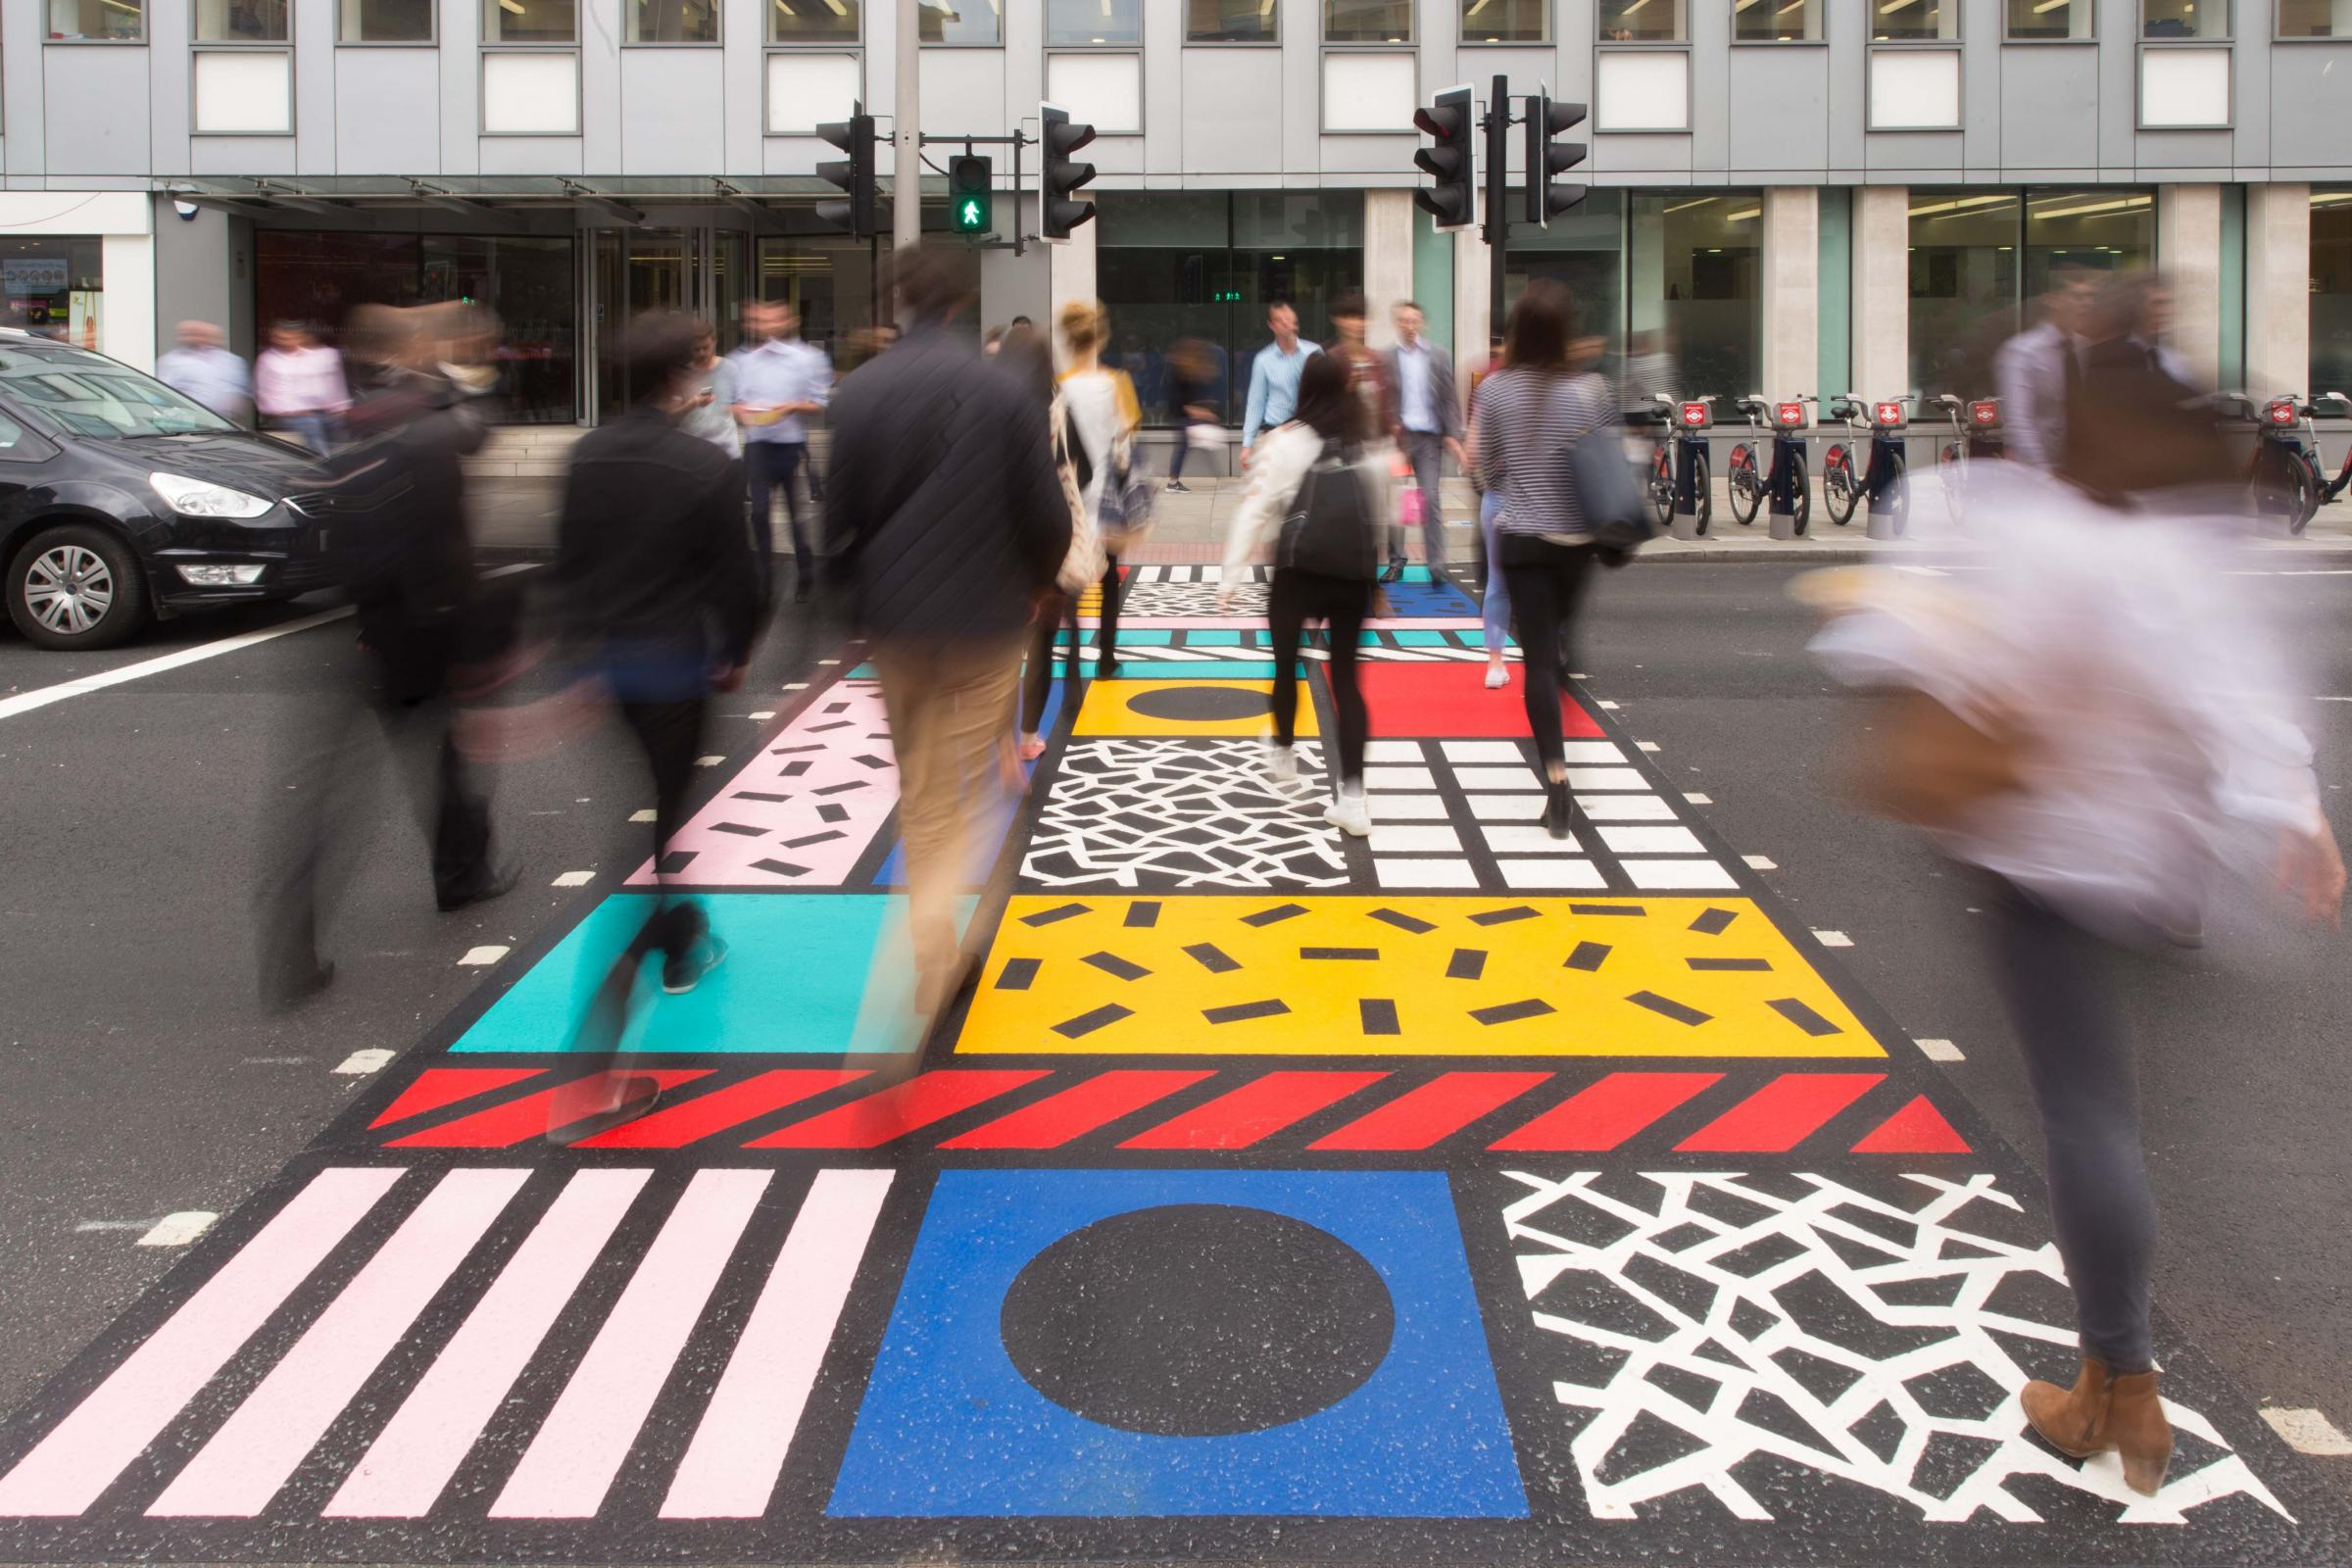 Camille Walala Colourful Crossing commissioned by Better Bankside - credit should read Better Bankside. This is what a new piece of public art in Southampton could look like